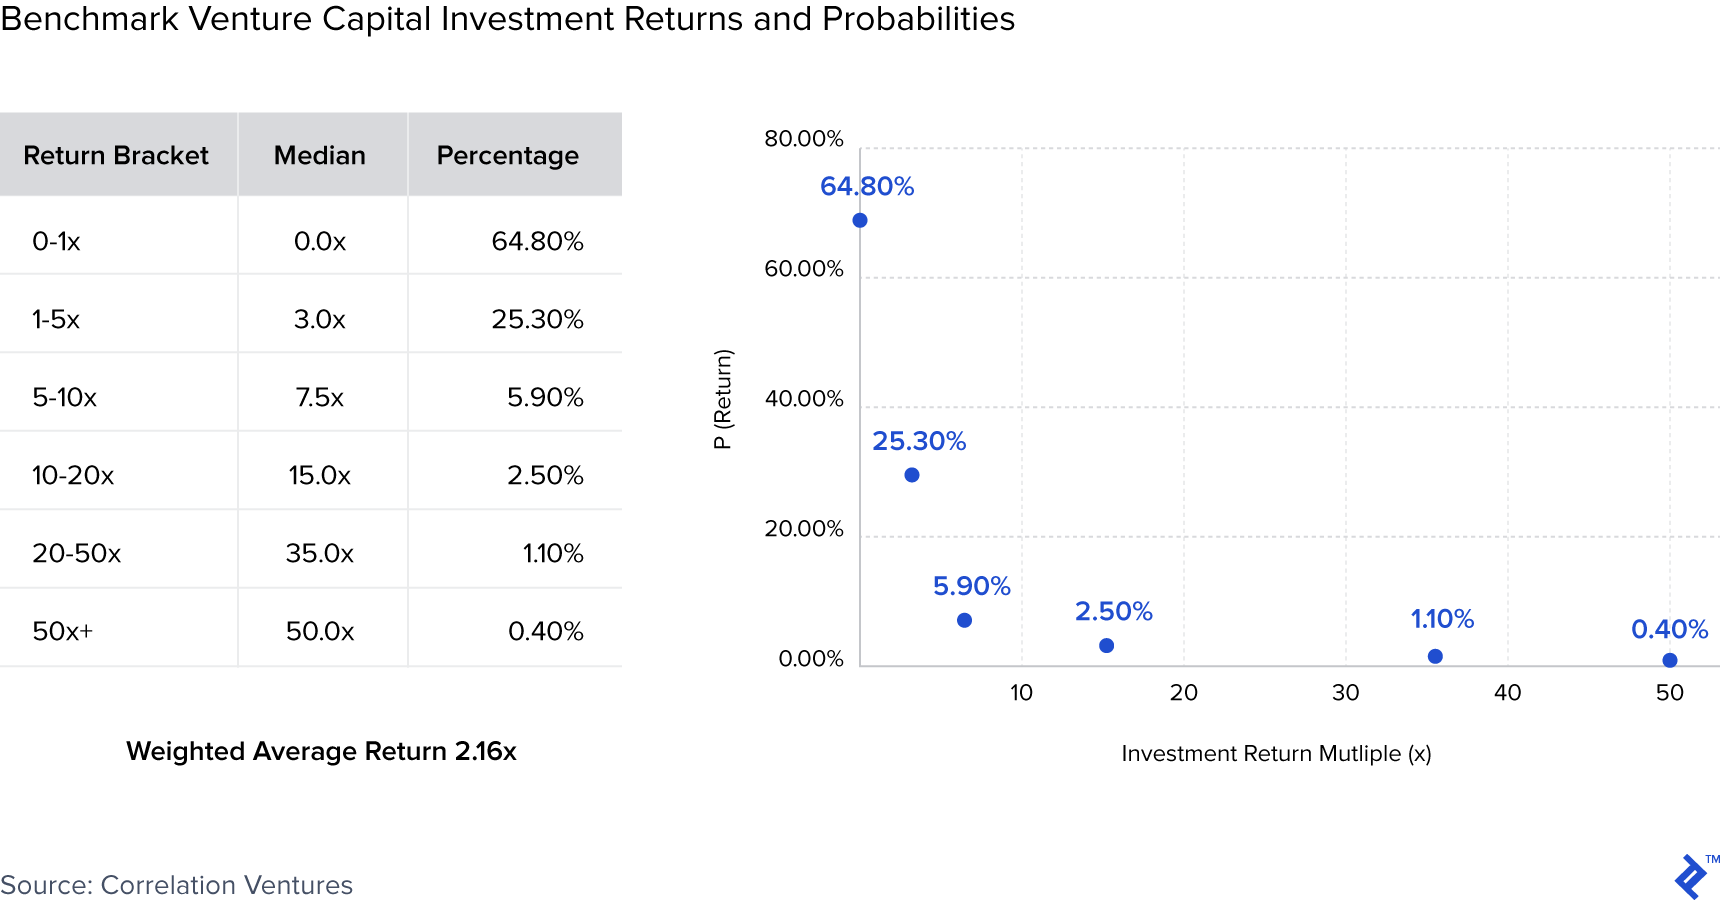 Table and chart describing benchmark venture capital investment returns and probabilities